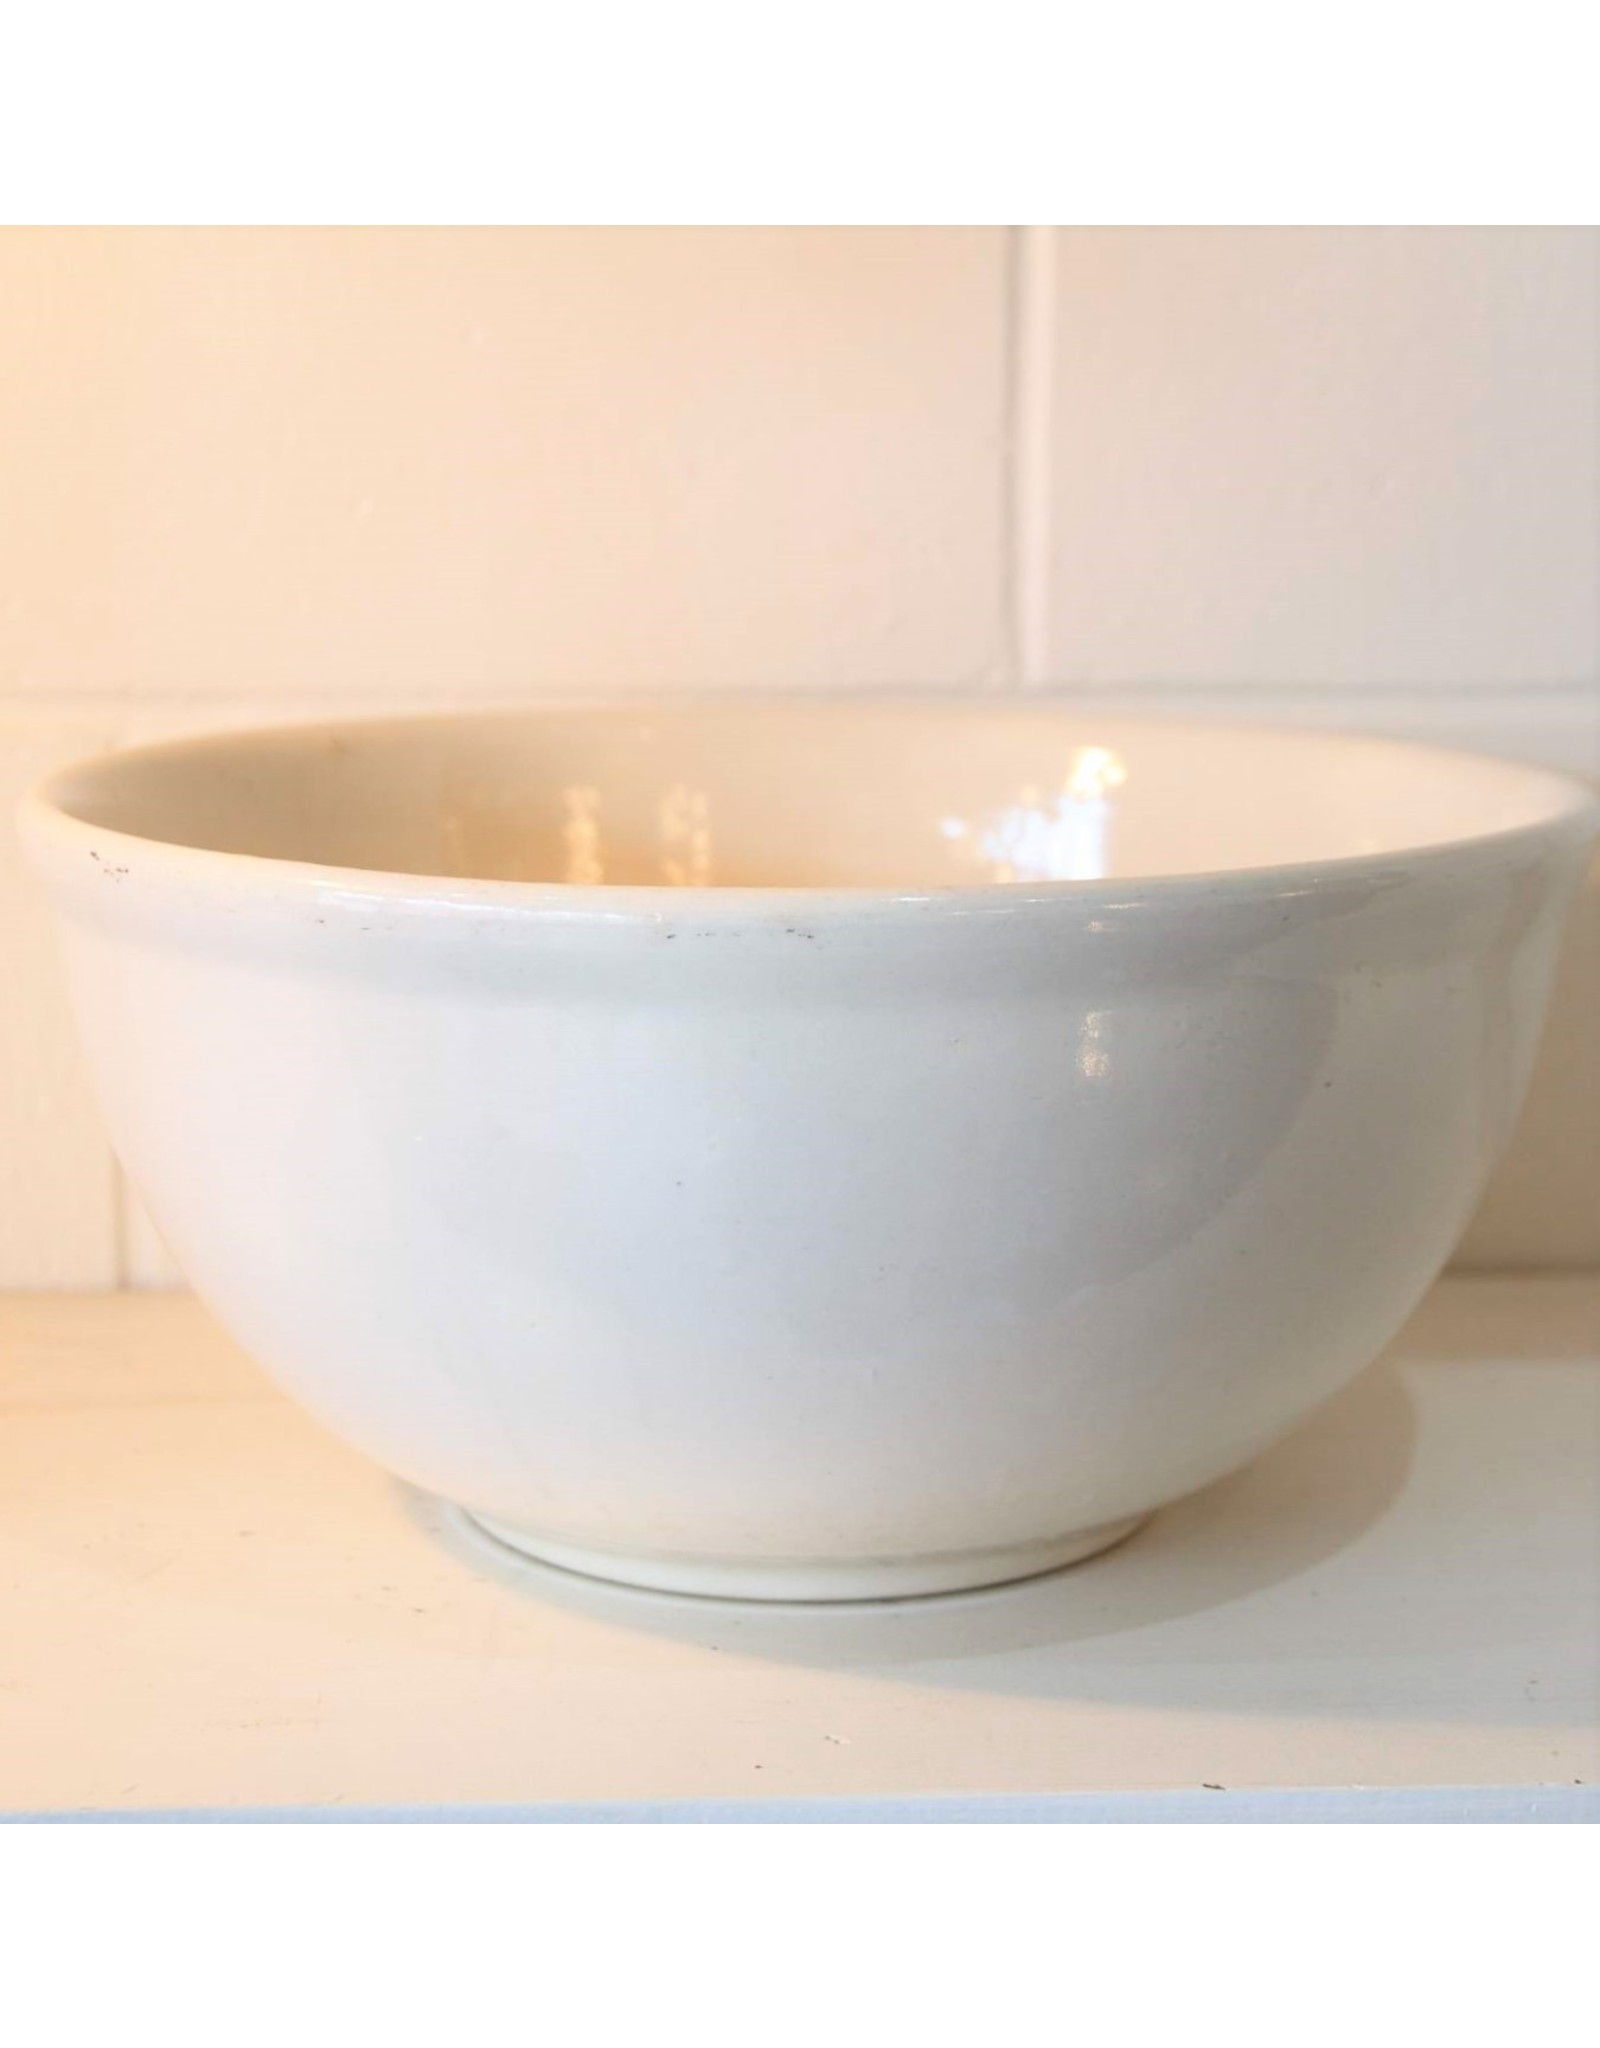 Mixing bowl - ironstone, impressed 10 on base